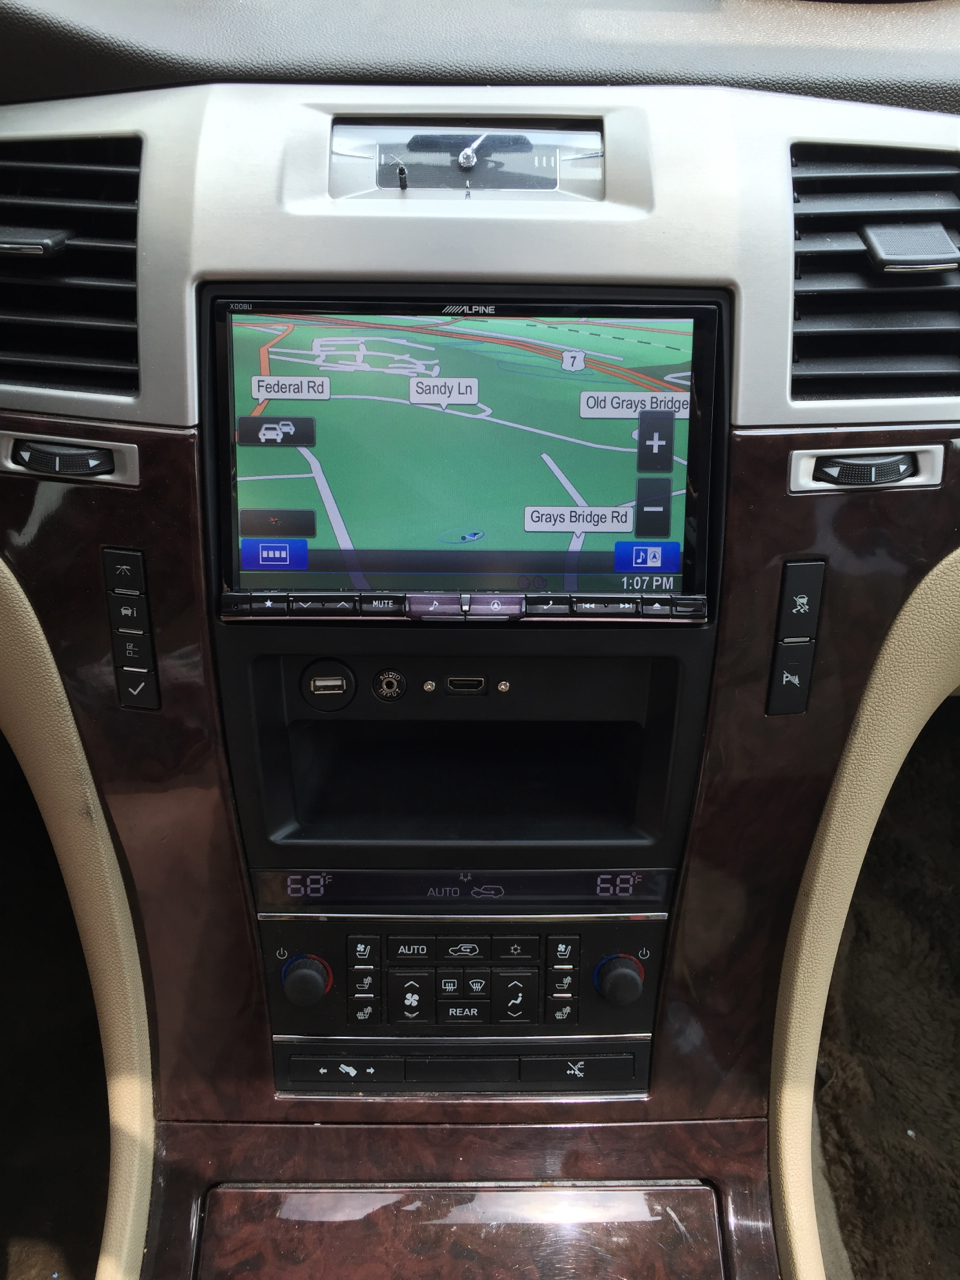 Cadillac Escalade Gets Restyled With An Alpine X008u Car Stereo Replacement Wire Harness W Nav Output Kits Audio Wiring Reviews News Tuning How To Guides